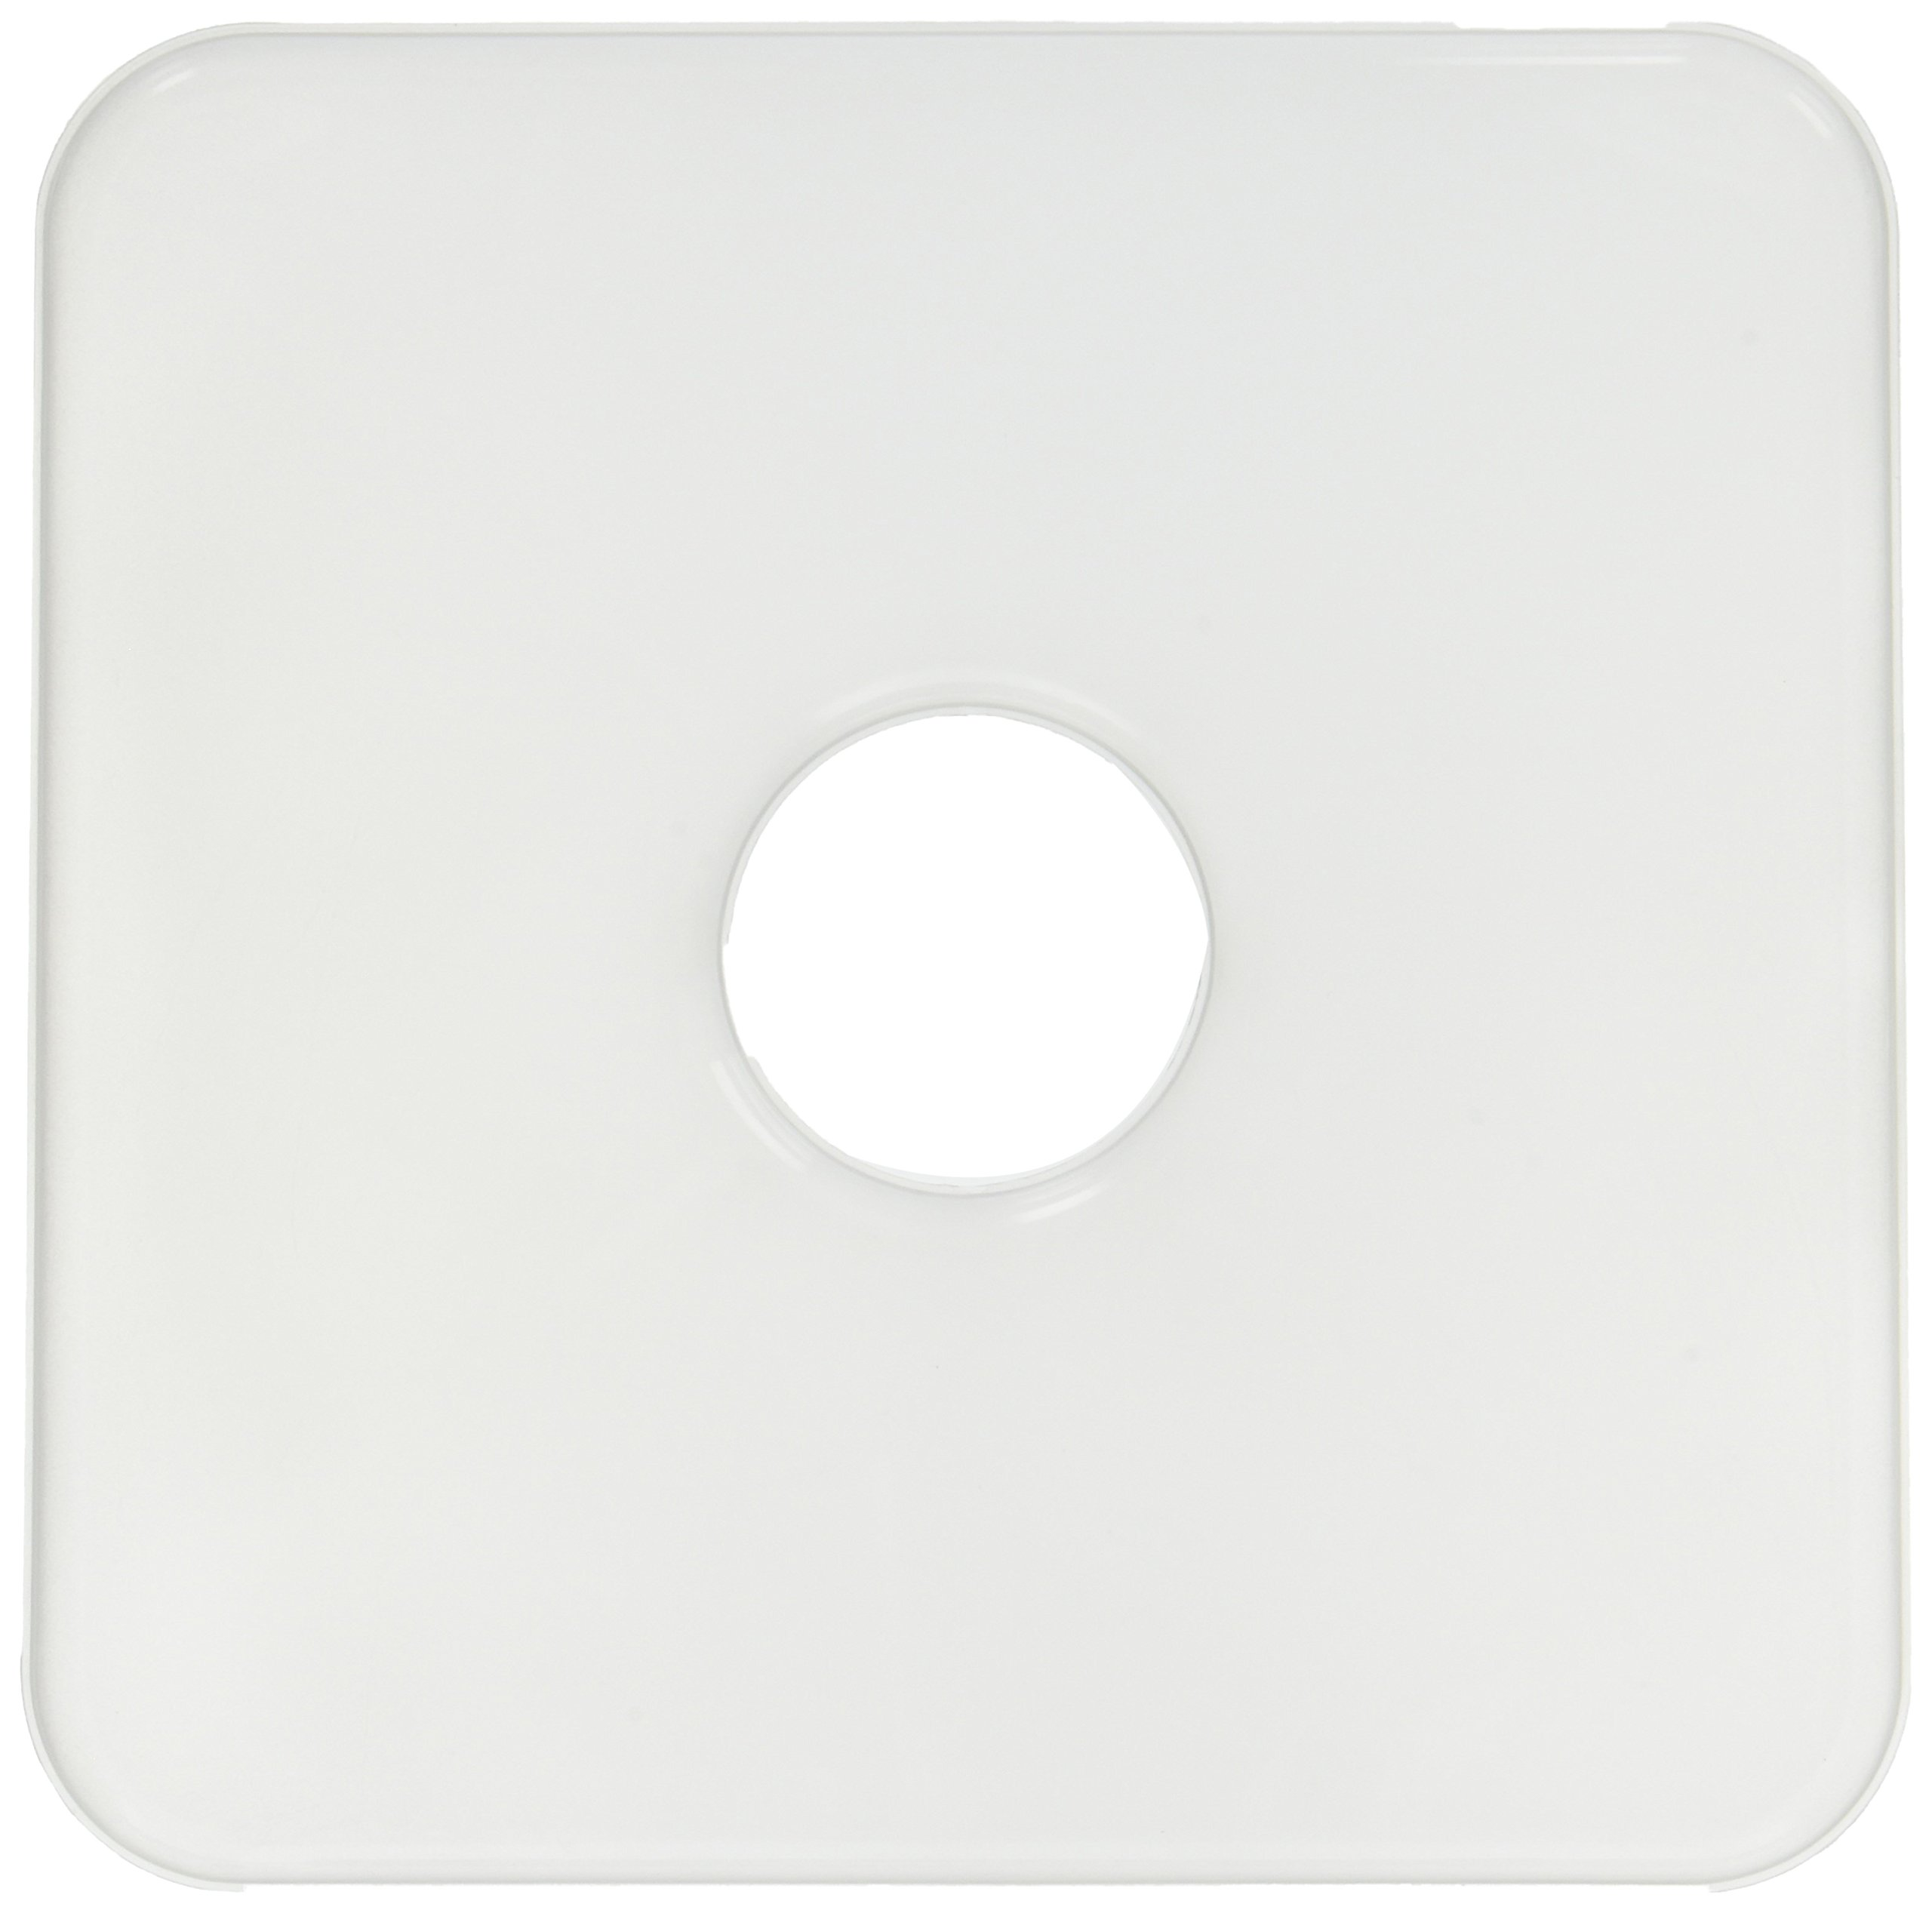 Ronco Square Leather Tray, 3 Pack